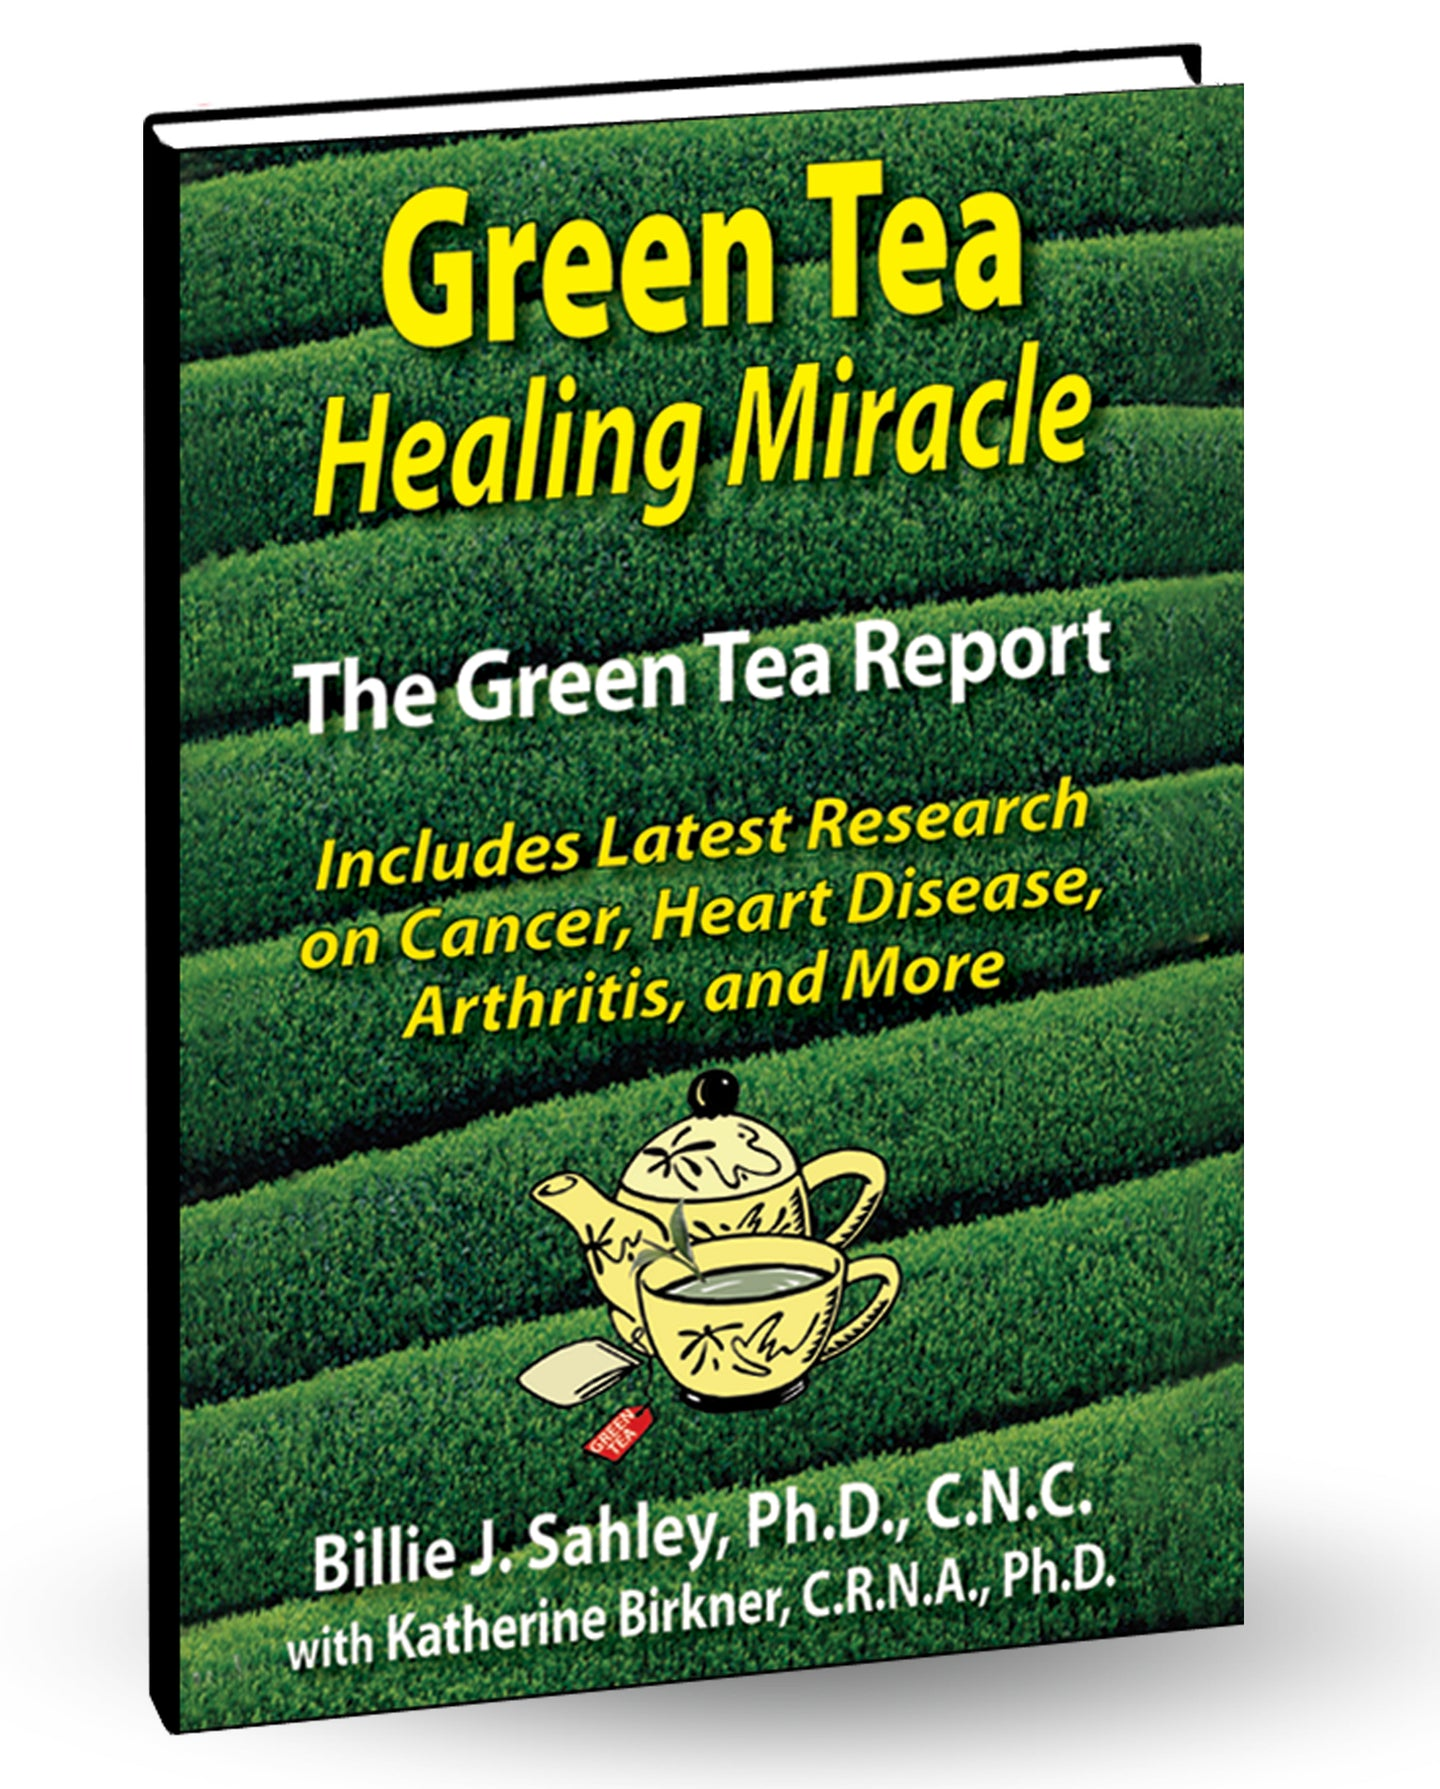 Green Tea Healing Miracle by Billie J. Sahley, Ph.D., C.N.C. with Katherine Birkner, C.R.N.A., Ph.D.